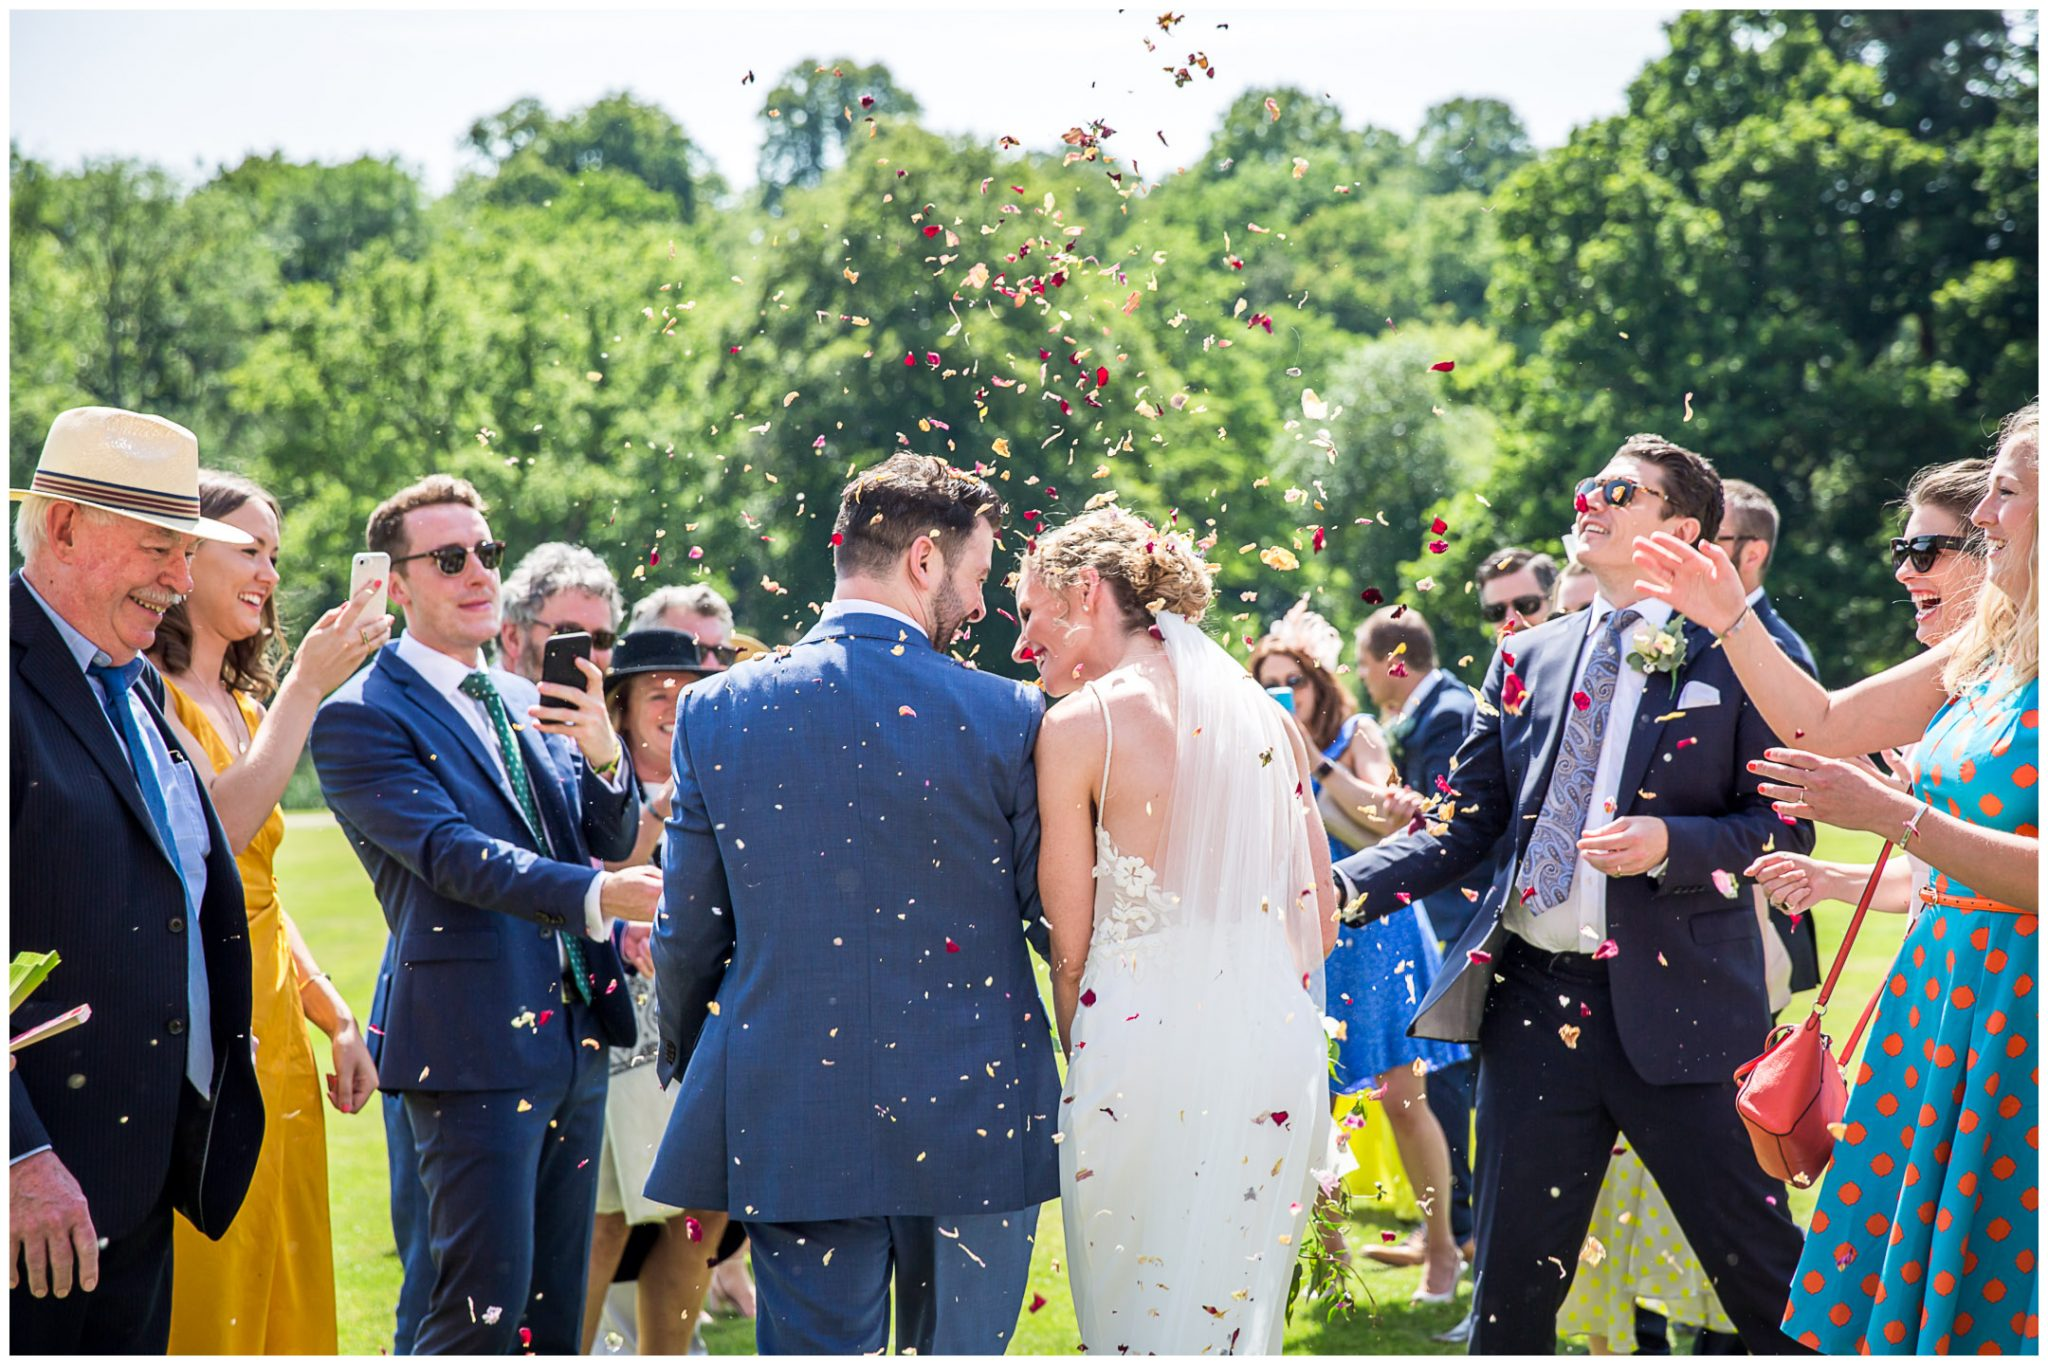 Wedding guests throw confetti over the couple